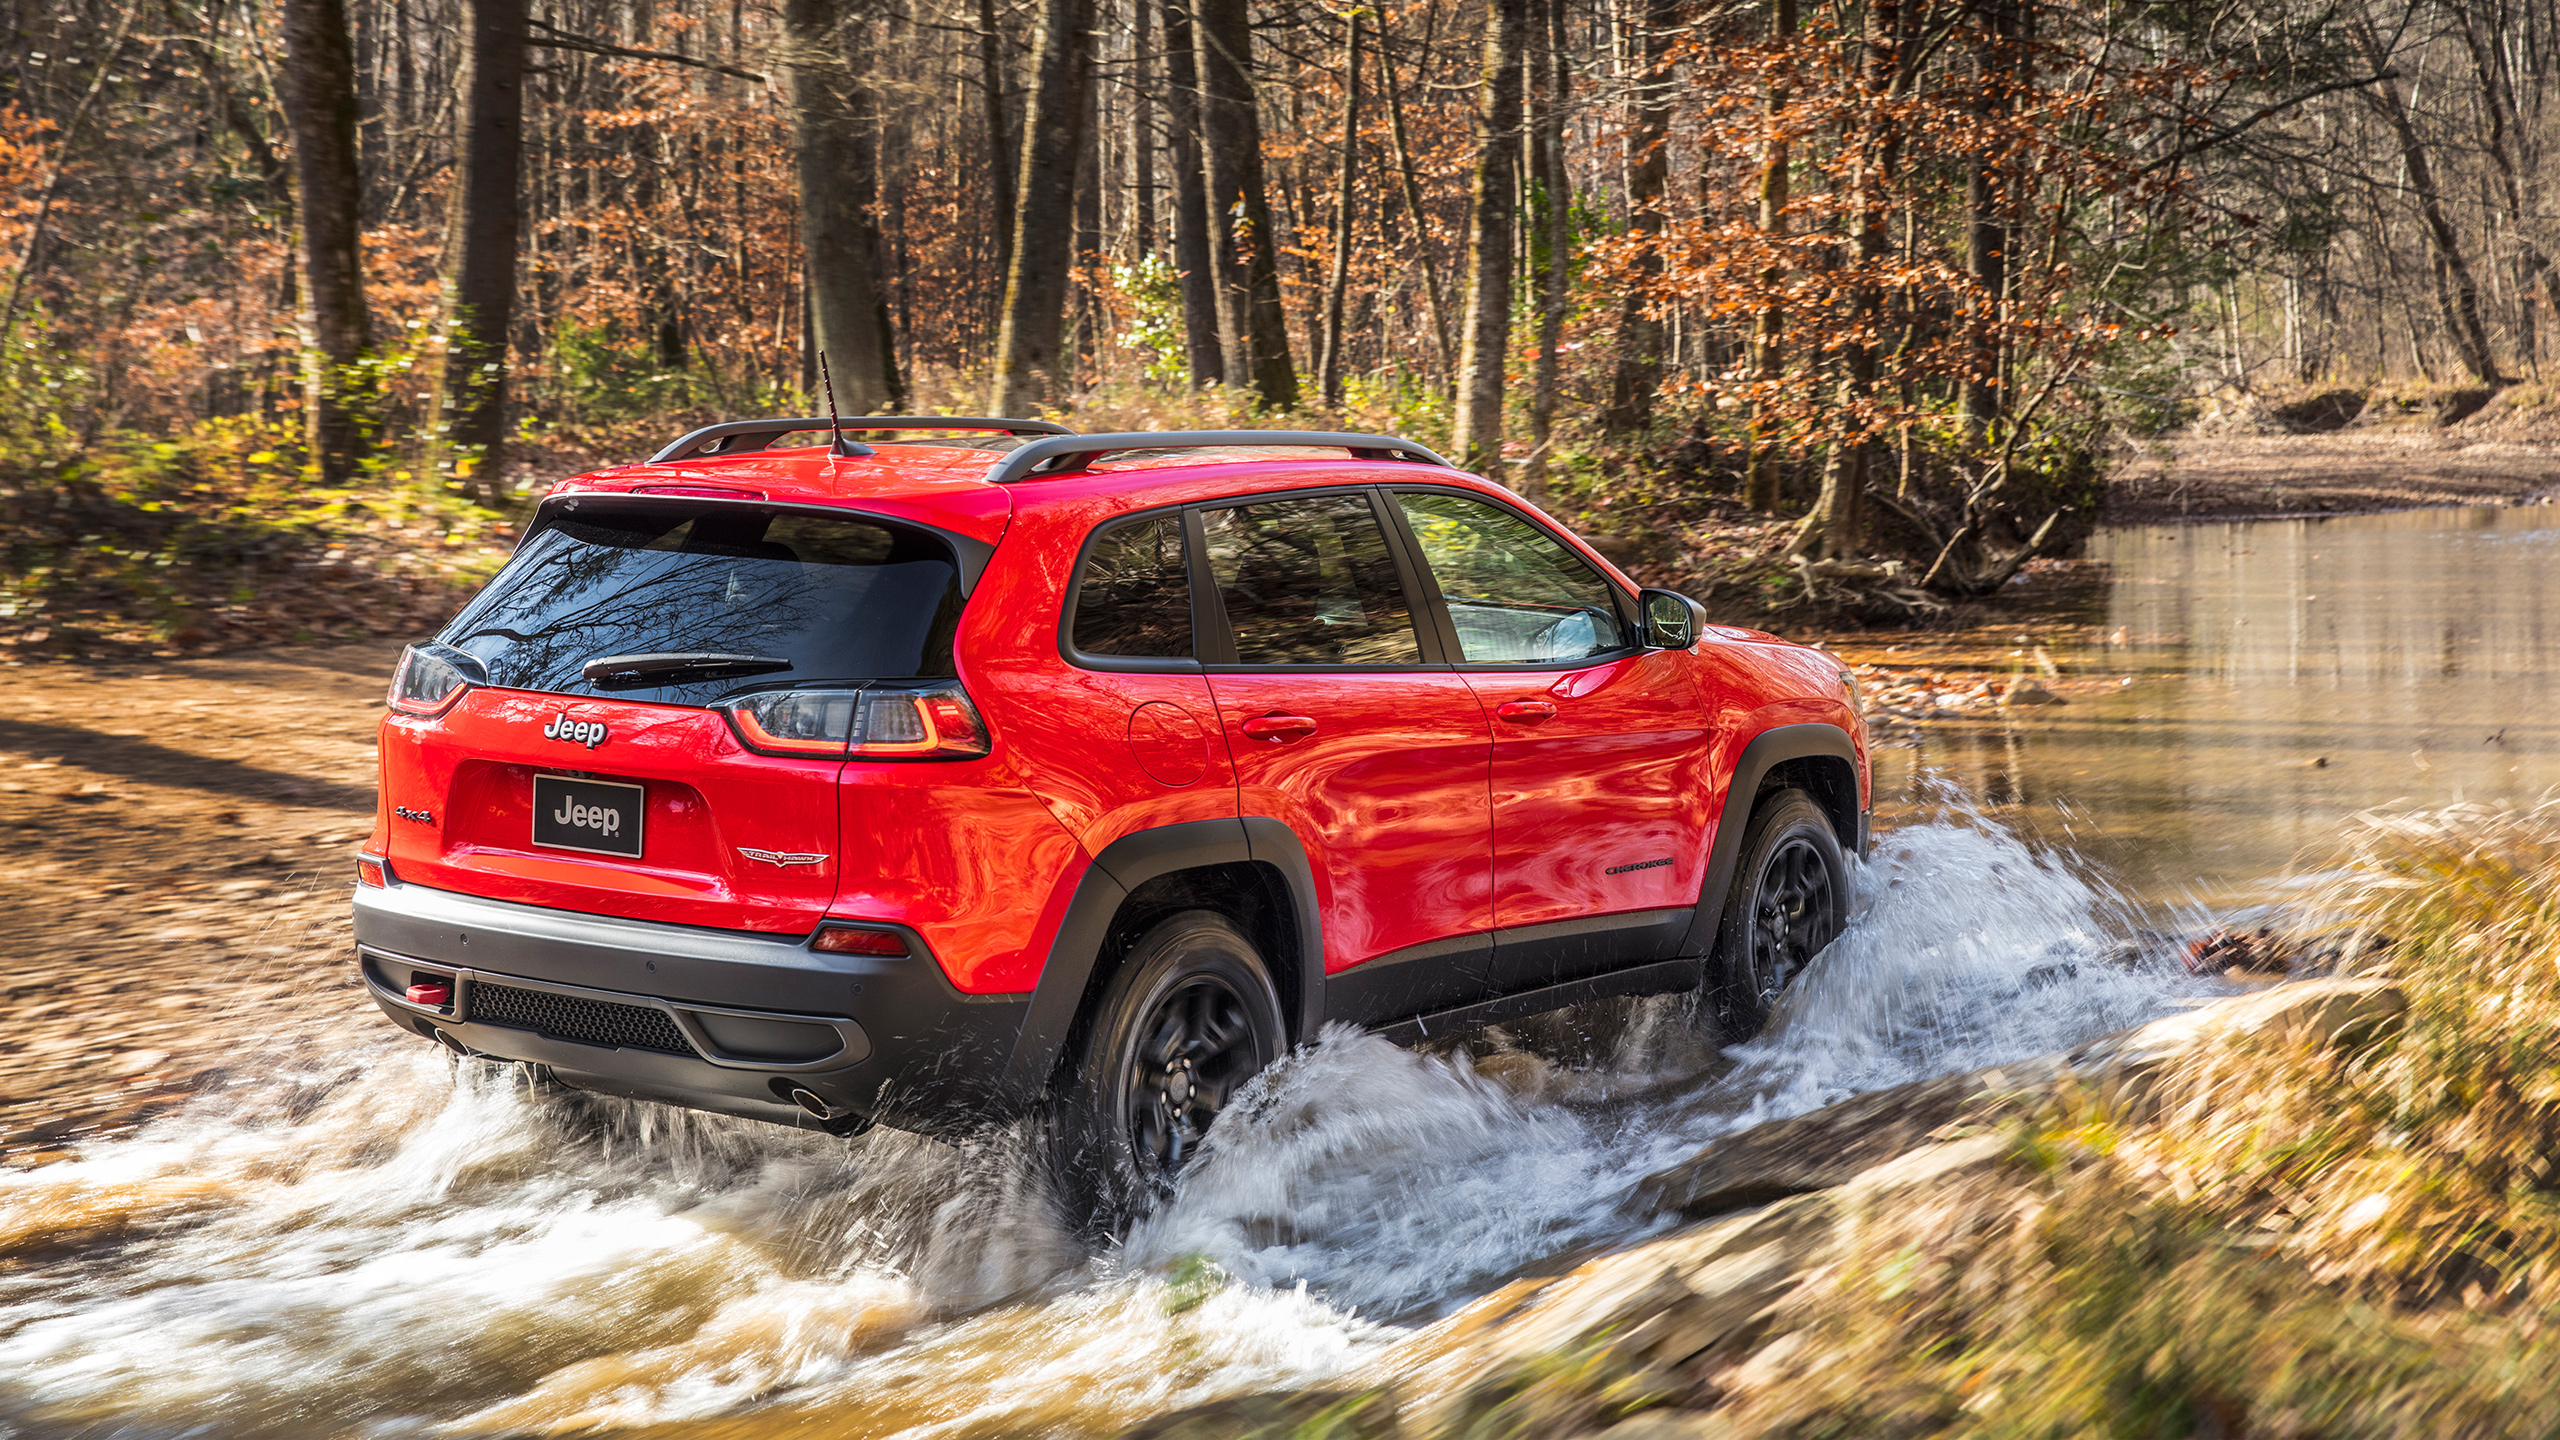 2019 Jeep Cherokee Trailhawk 4 Wallpaper | HD Car ...